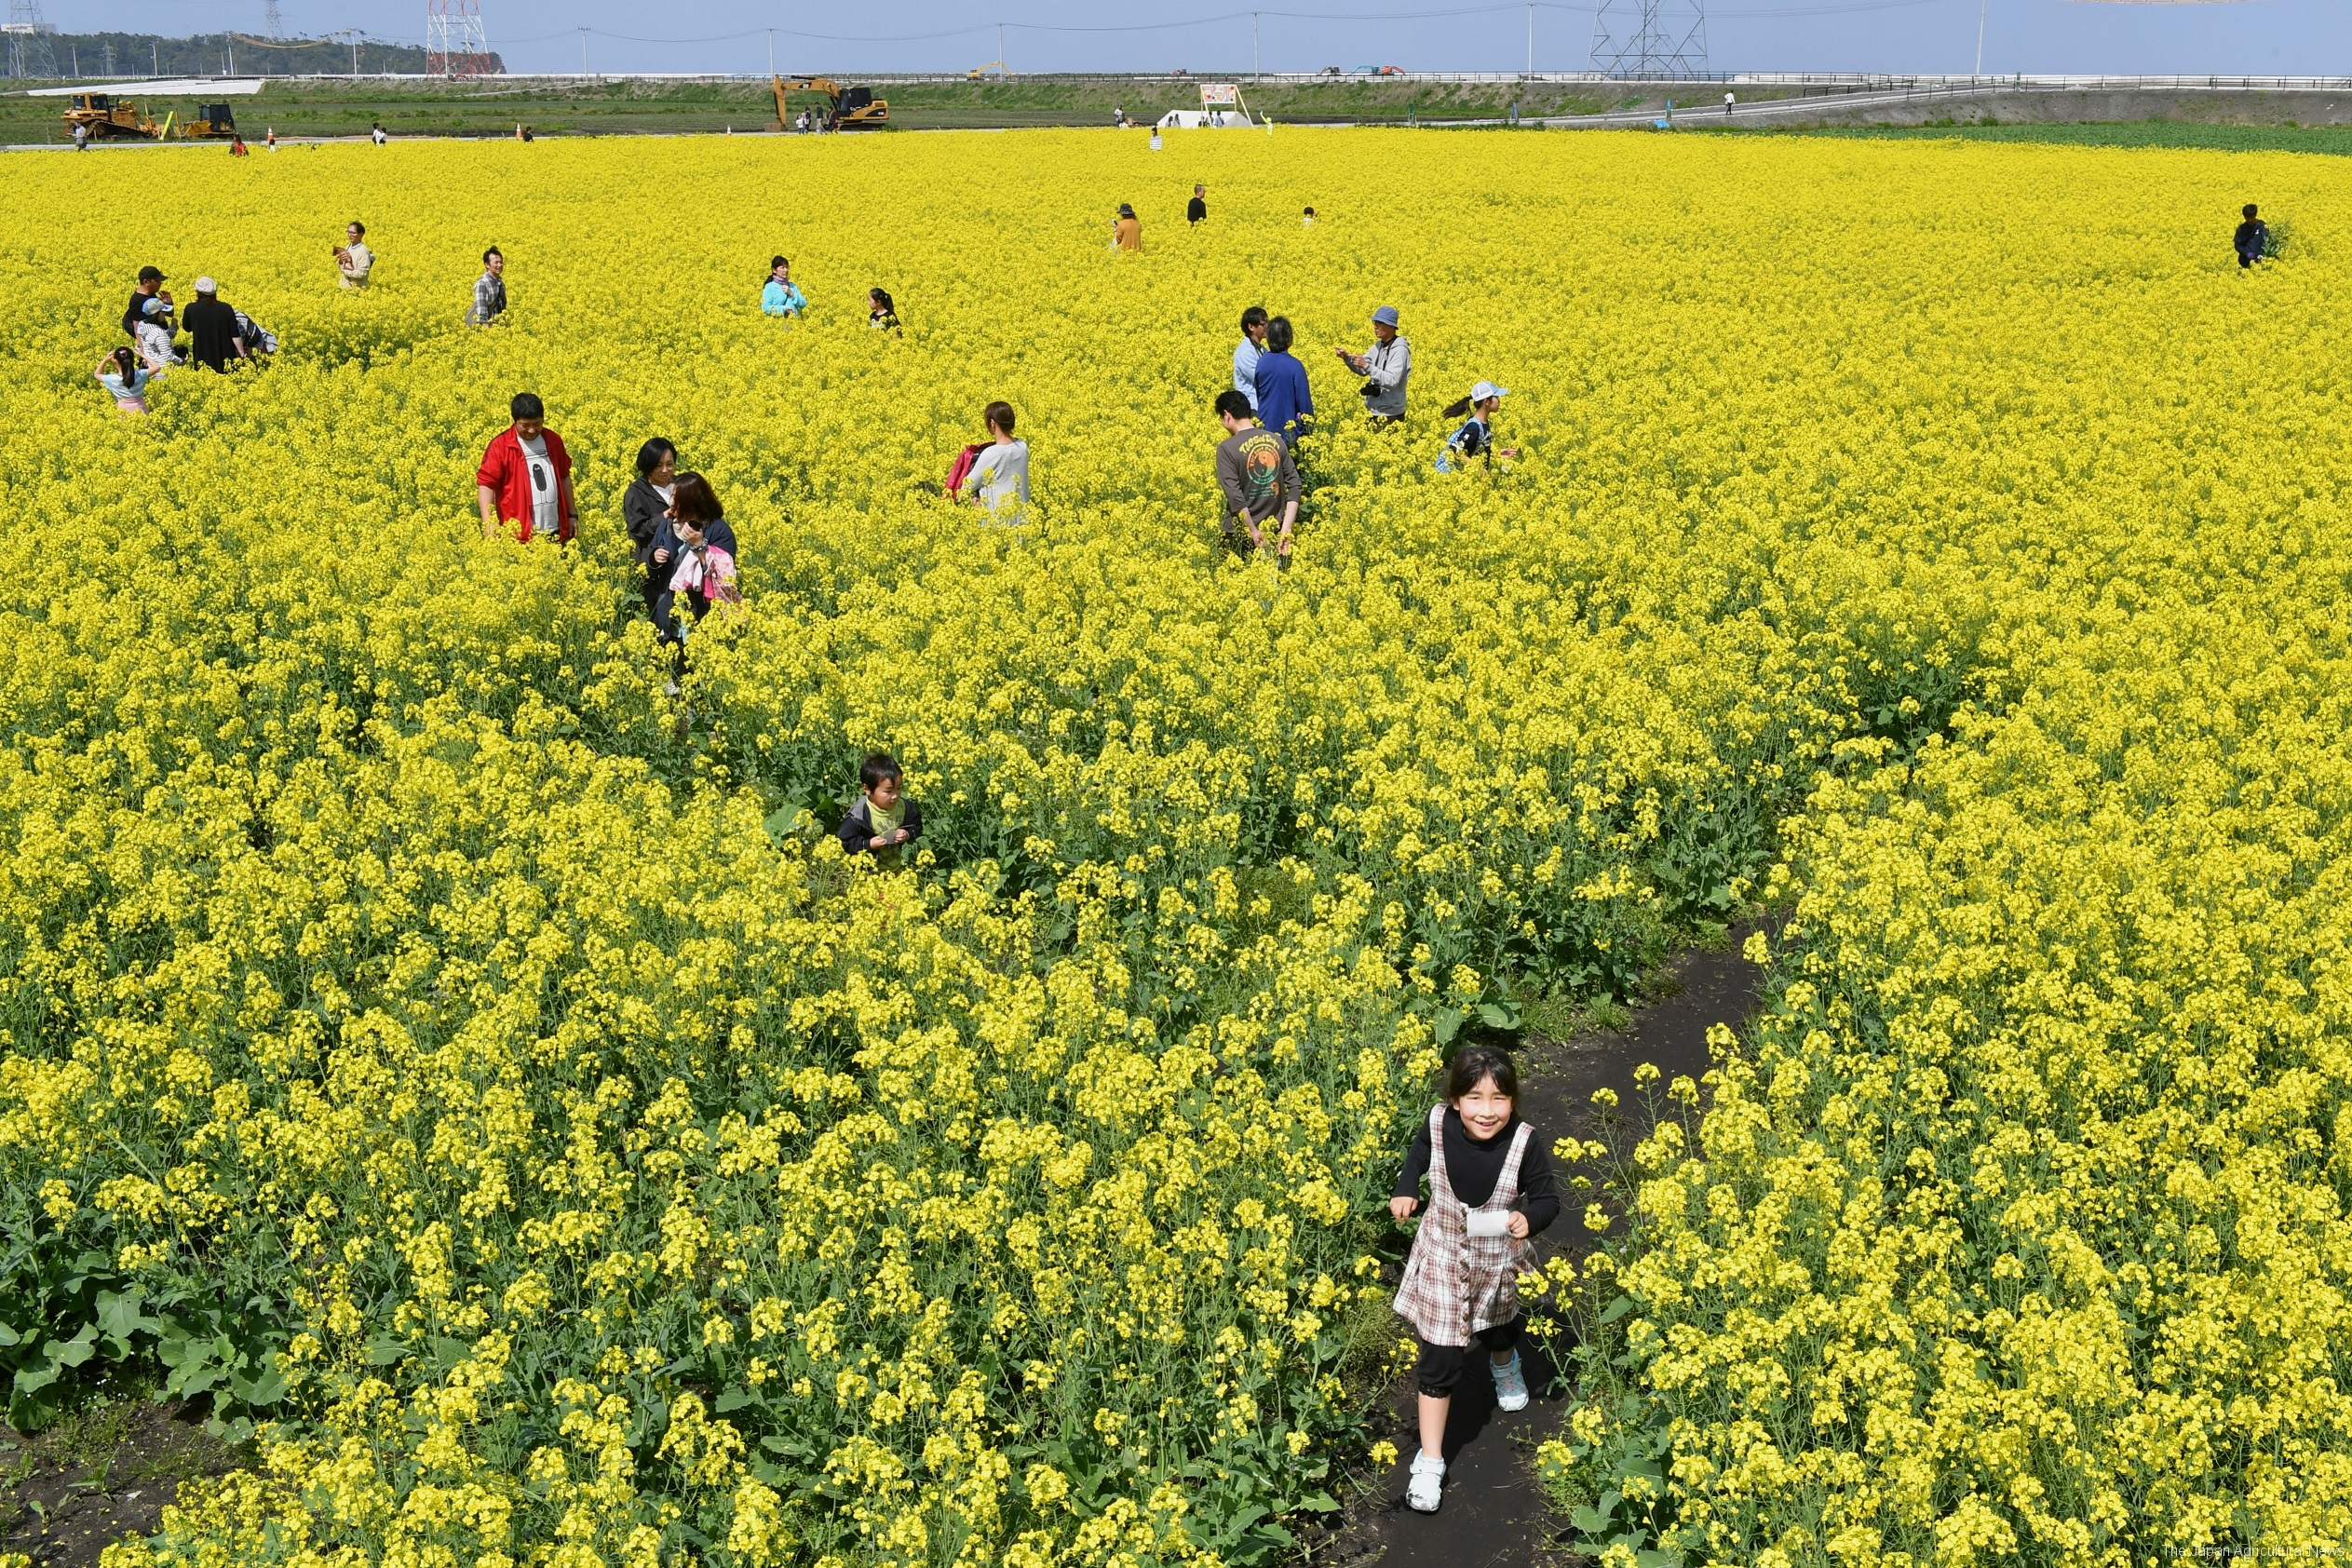 Visitors to a rape blossom maze in Minamisoma, Fukushima Prefecture, walk through lines of flowers. The rape plants will be harvested in June to produce oil.